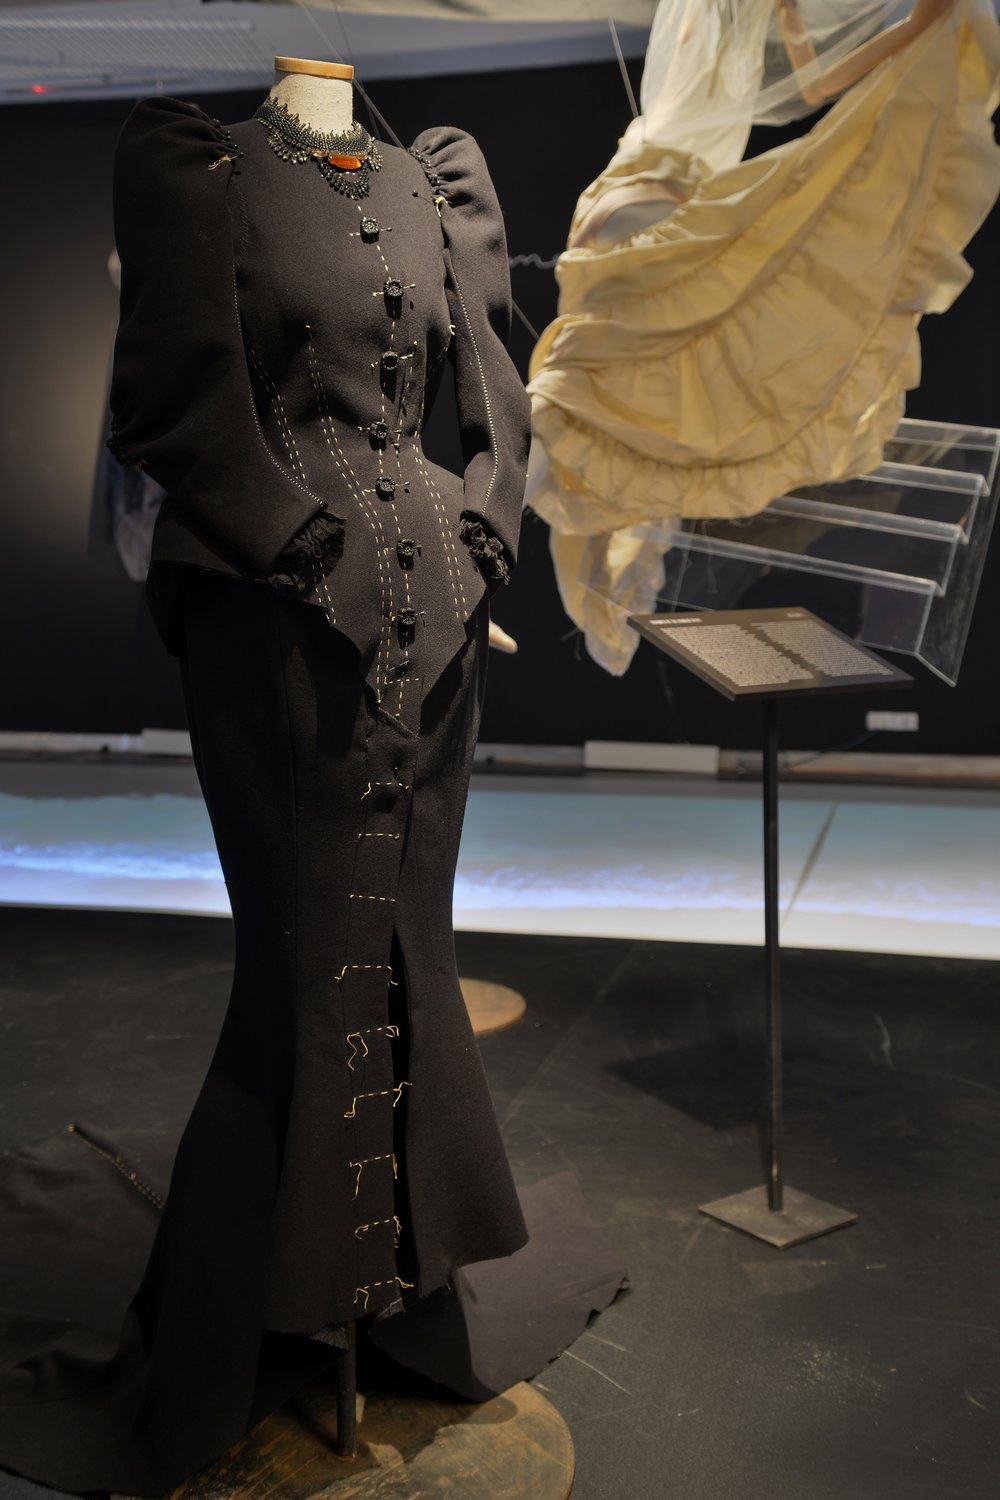 """Betty Eldad's dress, from the exhibition """"Je t'aime, Ronit Elkabetz"""" at Design Museum Holon. Photo by Shay Ben Efraim. Courtesy the author."""